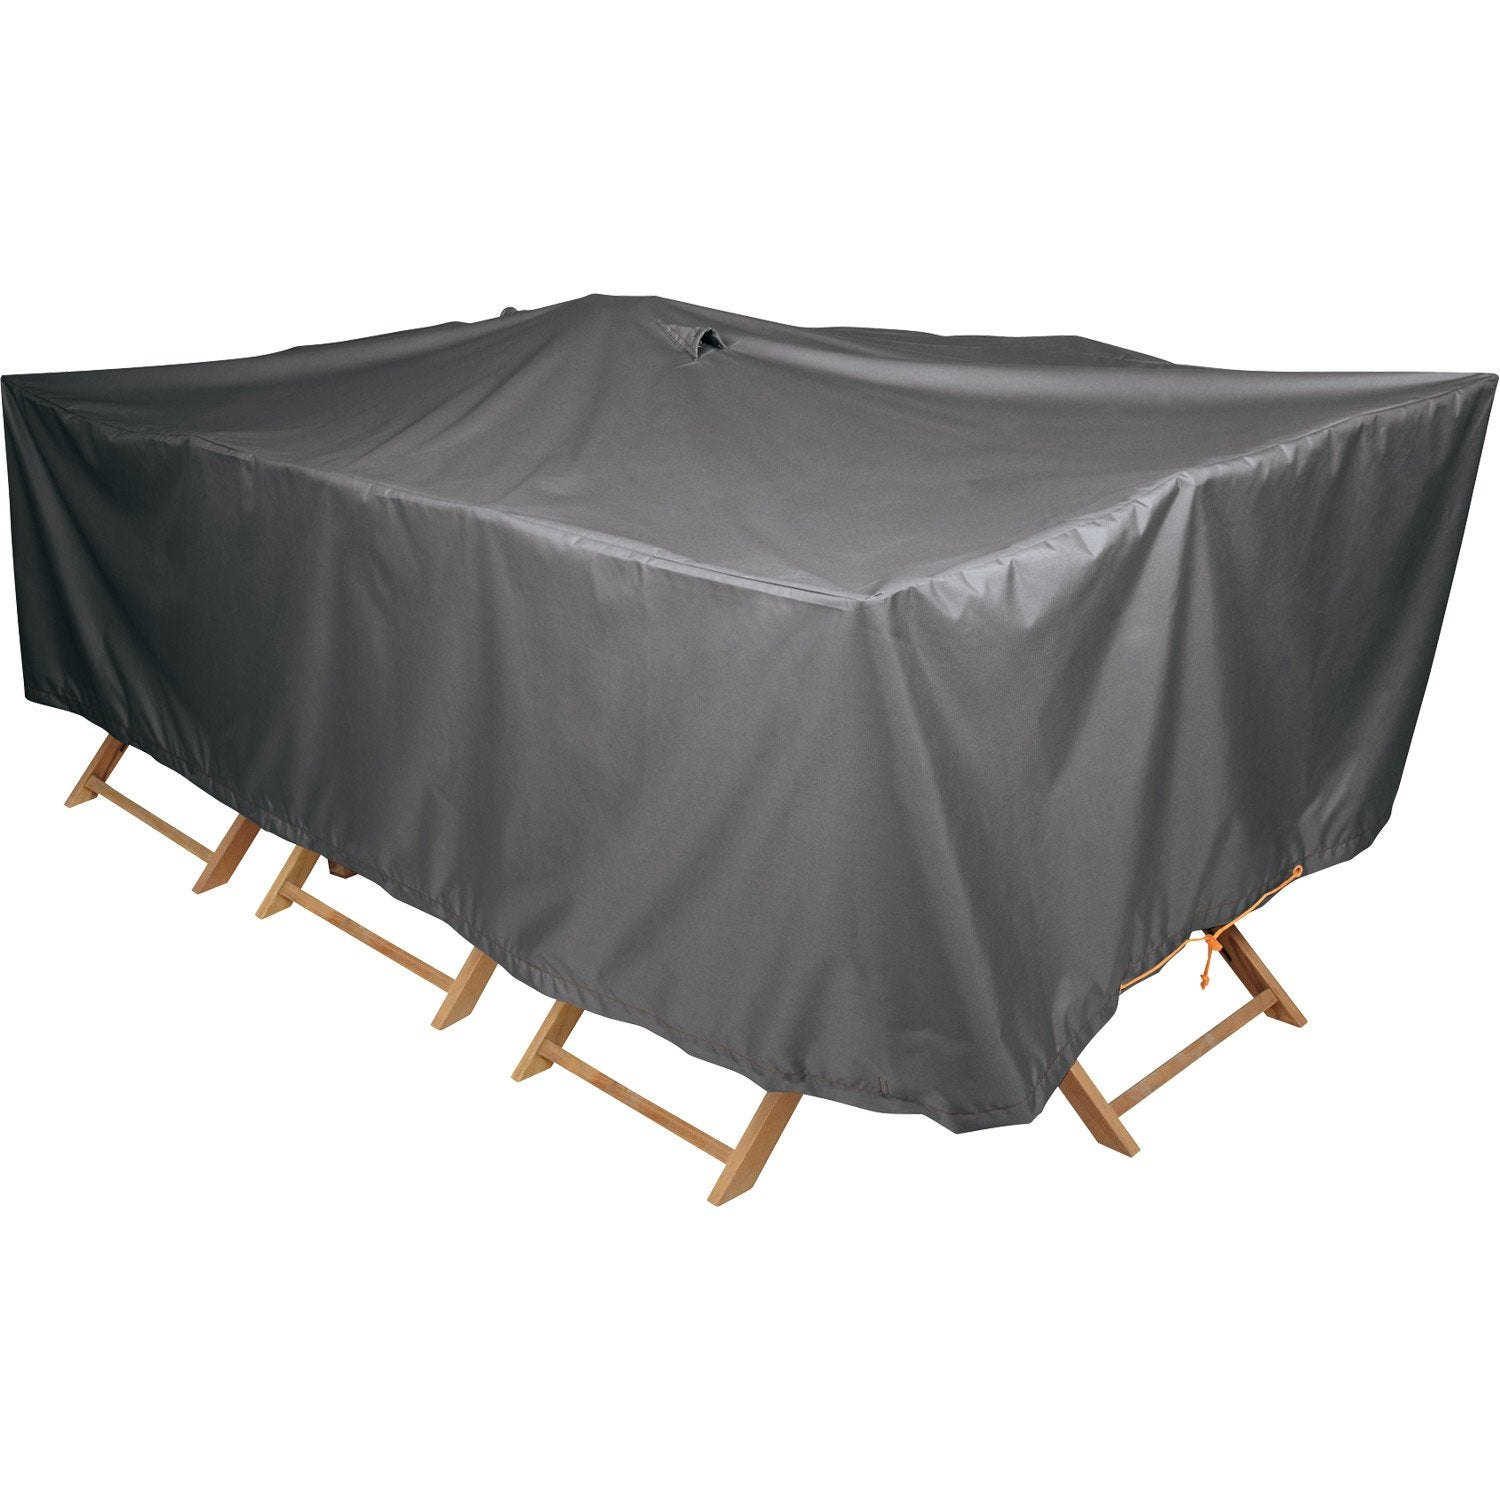 Housse de protection pour table naterial x x cm leroy merlin for Housse de salon de jardin hesperide